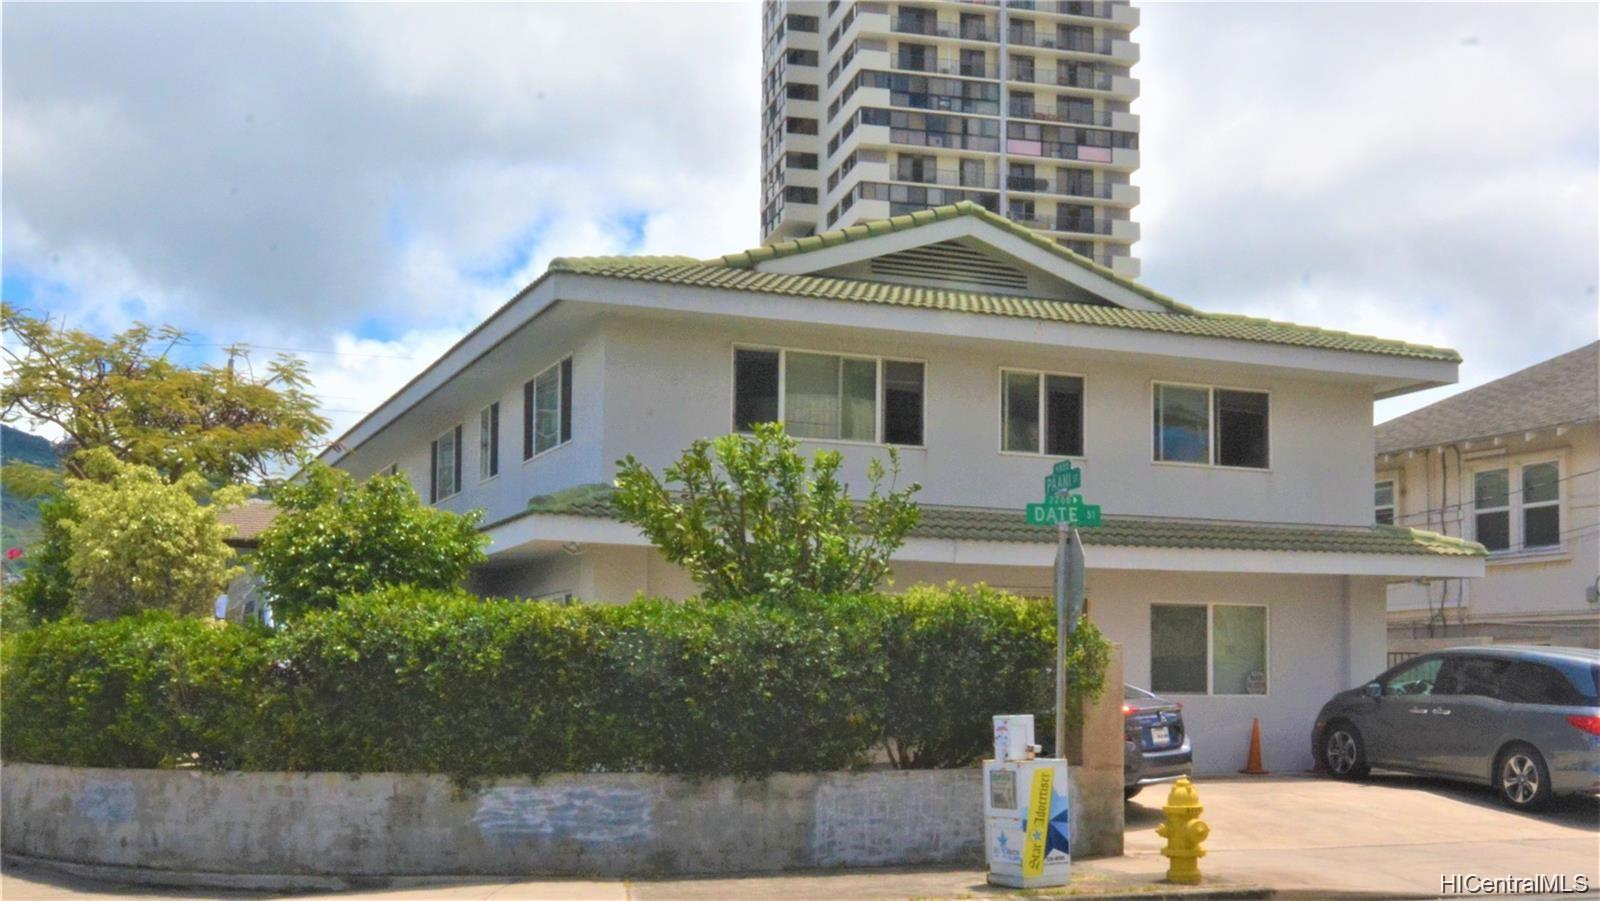 2204 Date Street Honolulu - Multi-family - photo 1 of 19